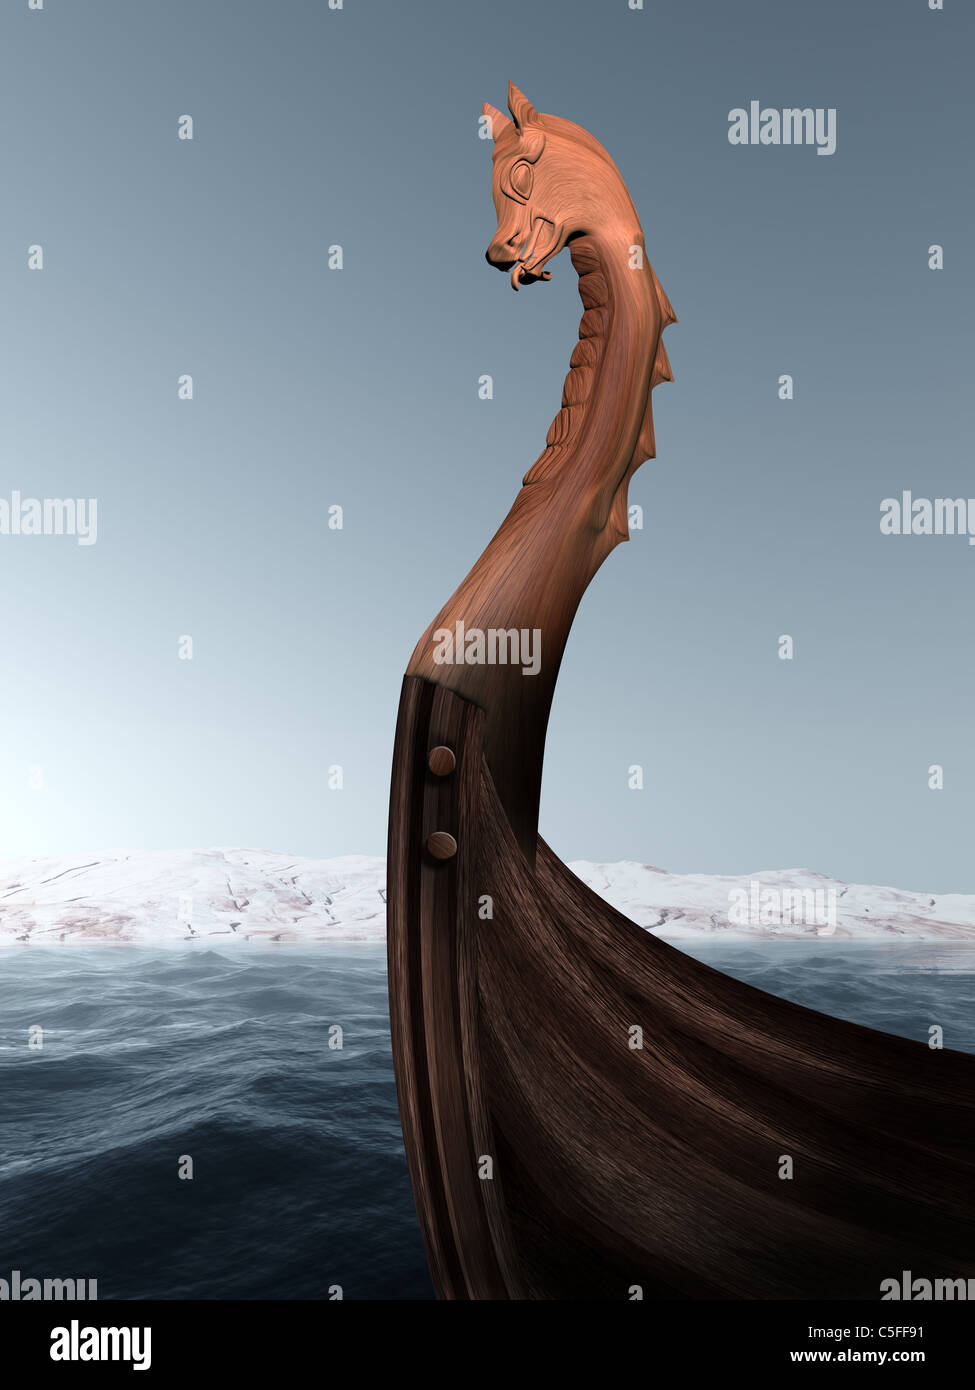 Illustration of an ancient wooden figurehead on a Viking longboat - Stock Image